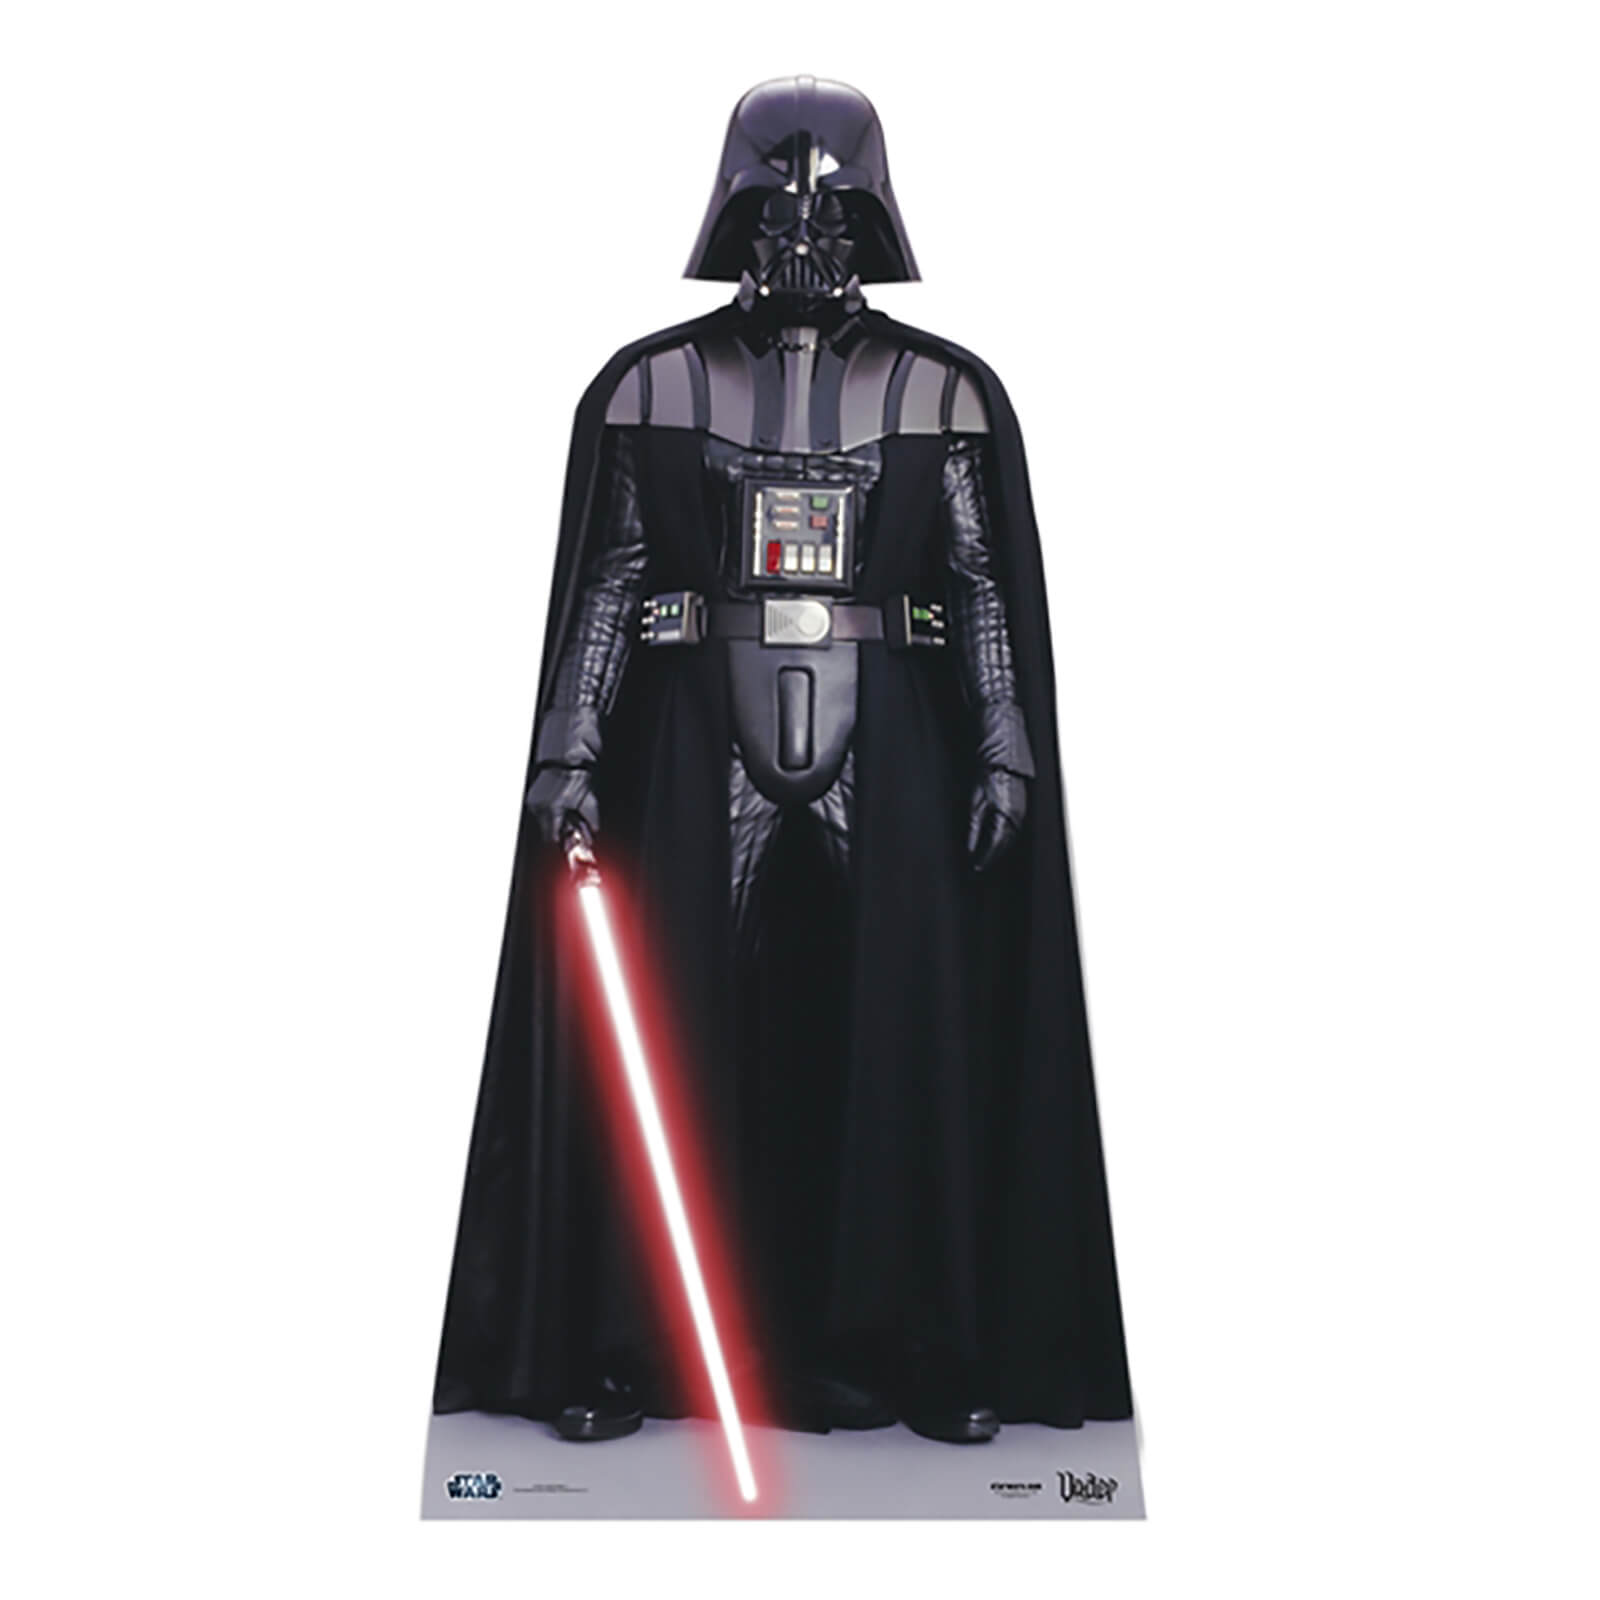 Image of Star Wars - Darth Vader Mini Cardboard Cut Out